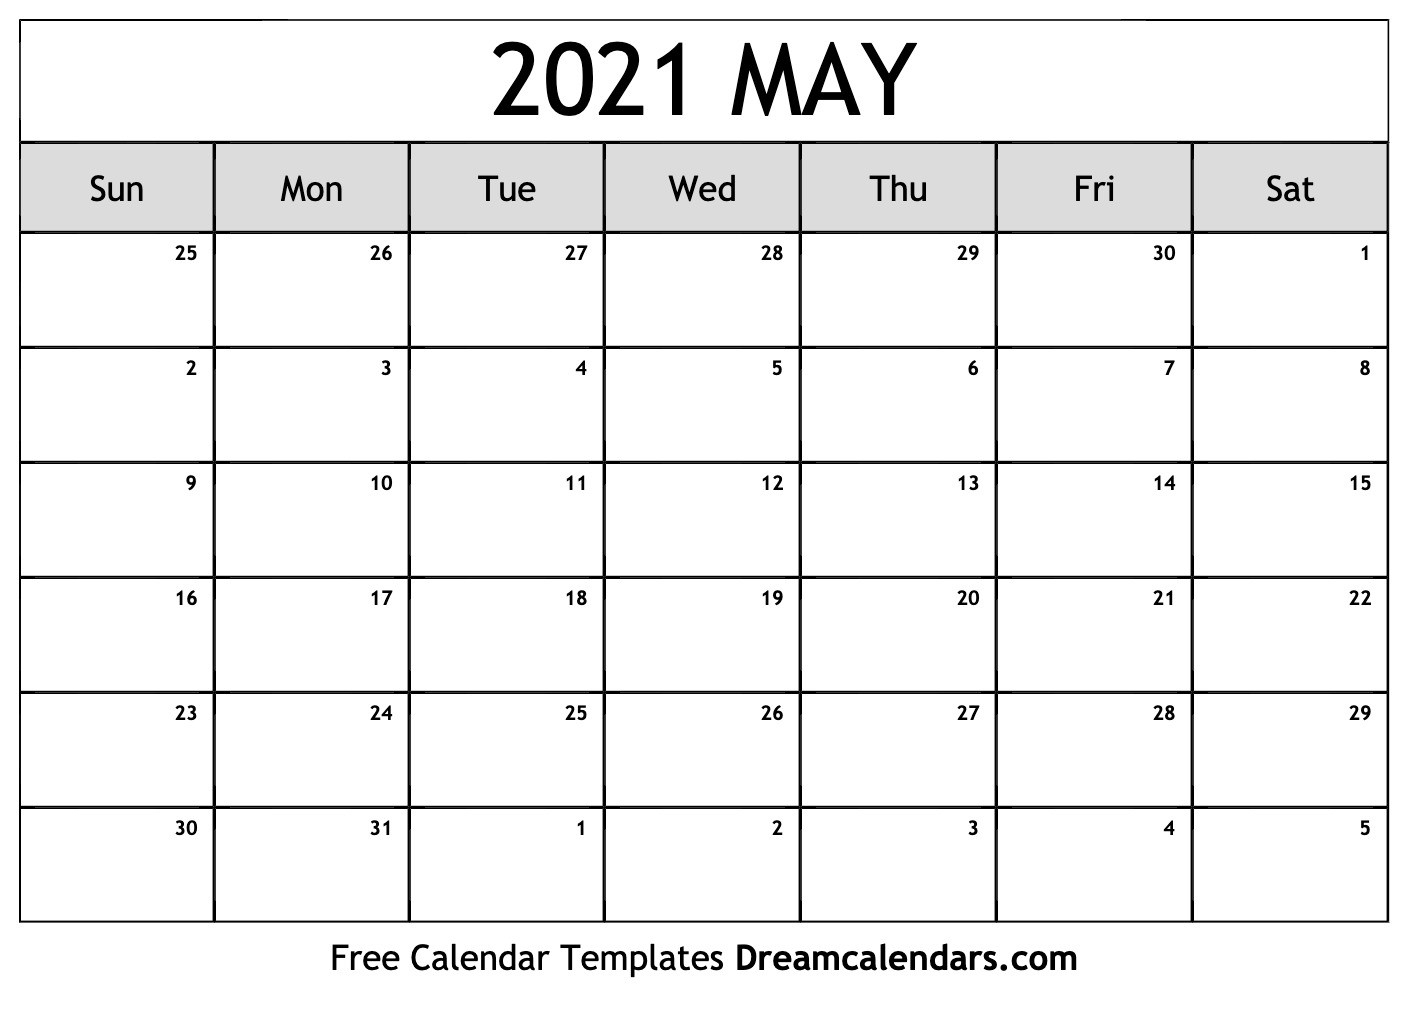 Printable May 2021 Calendar-2021 Print Free Calendars Without Downloading